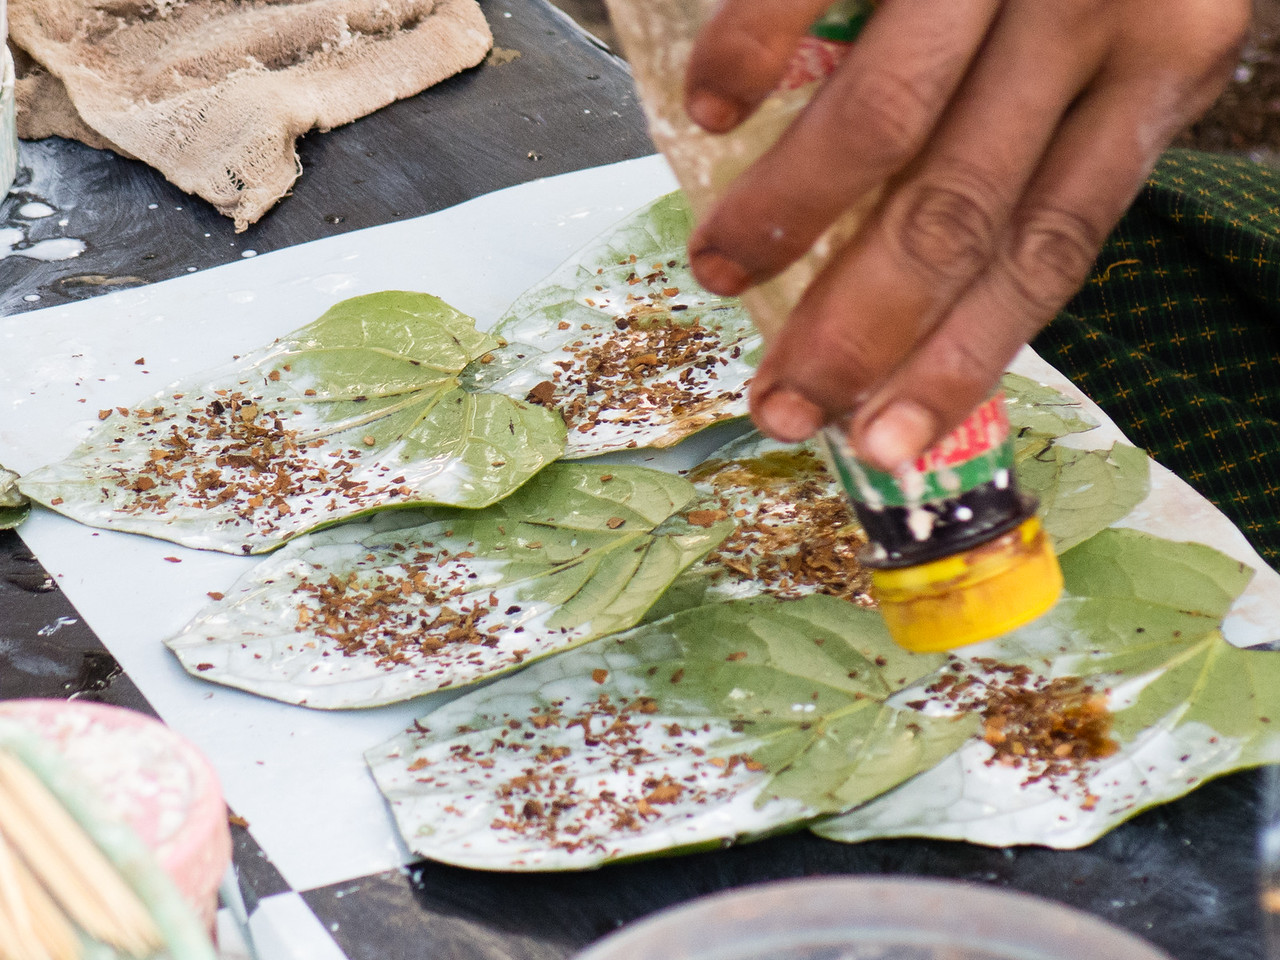 Preparing Betel Nut for Chewing